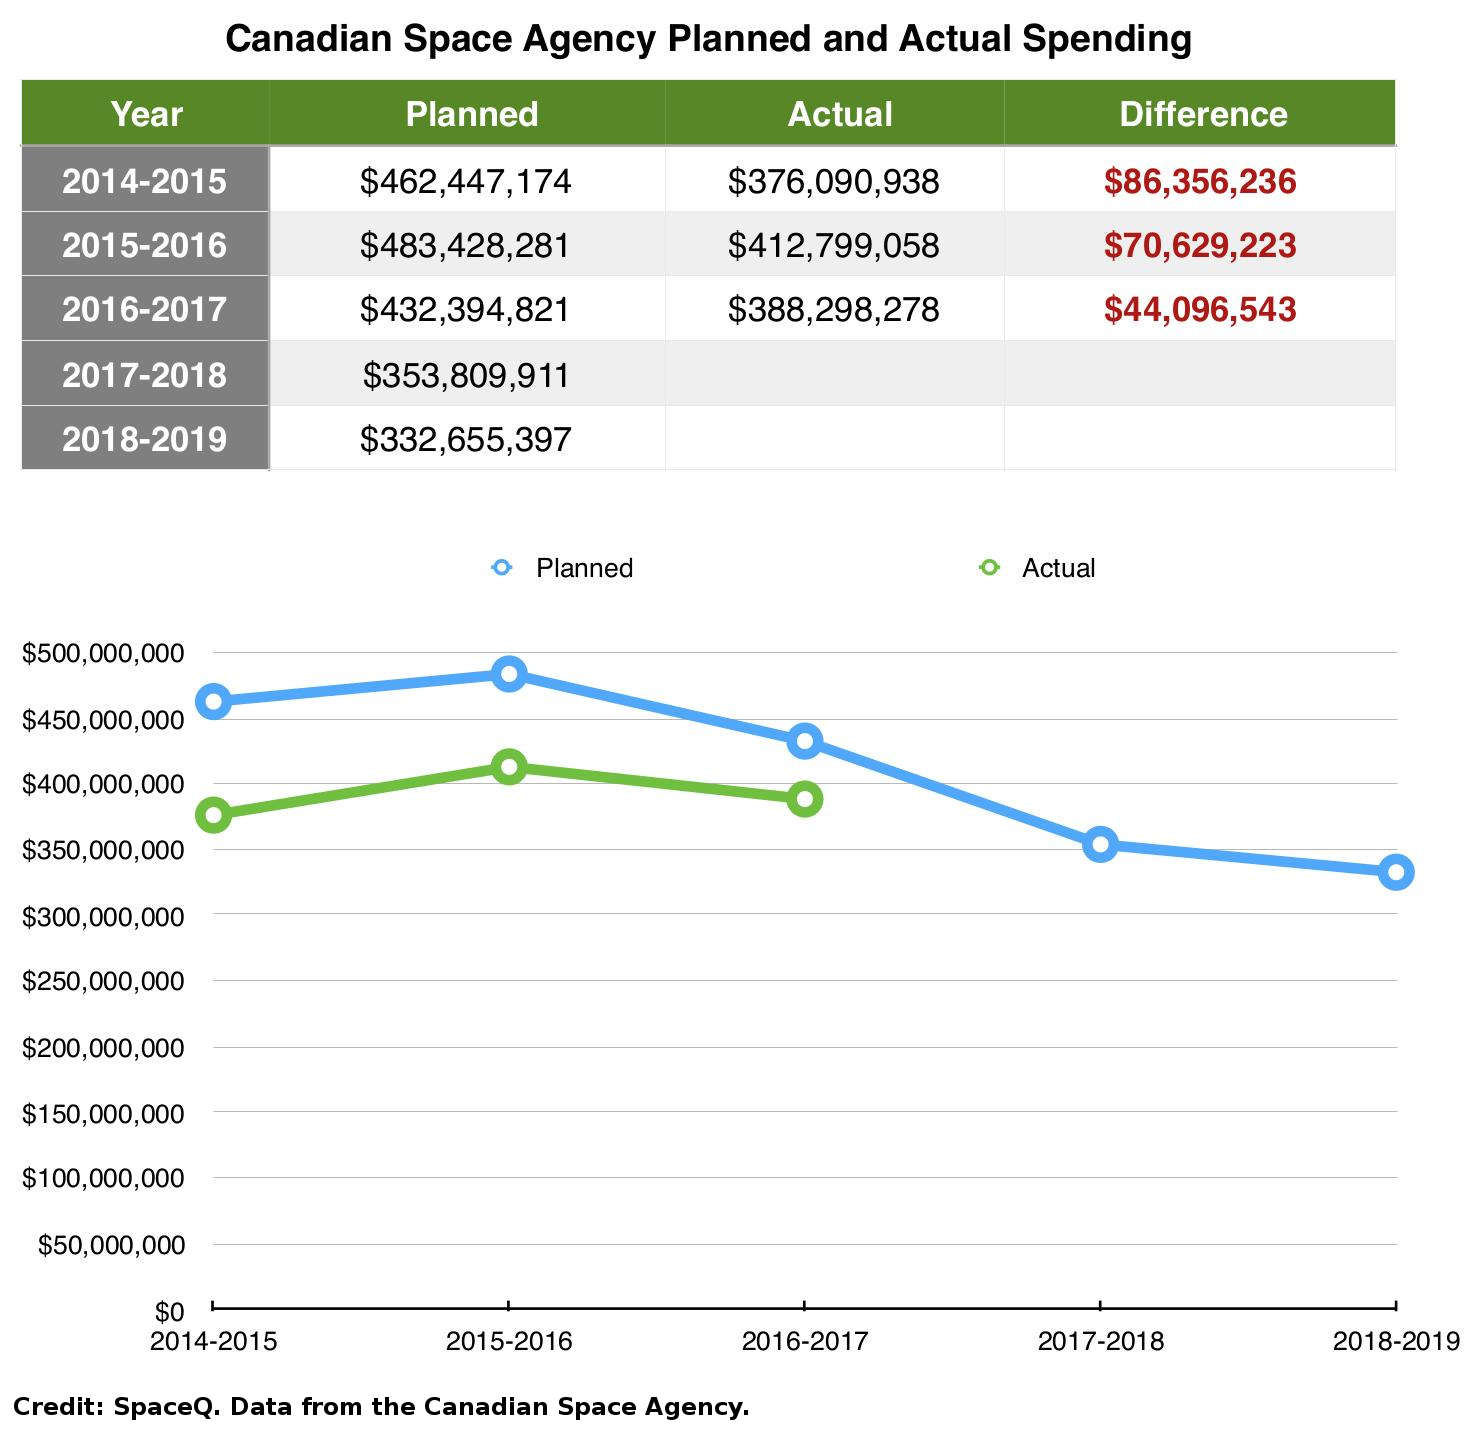 Canadian Space Agency planned versus actual spending